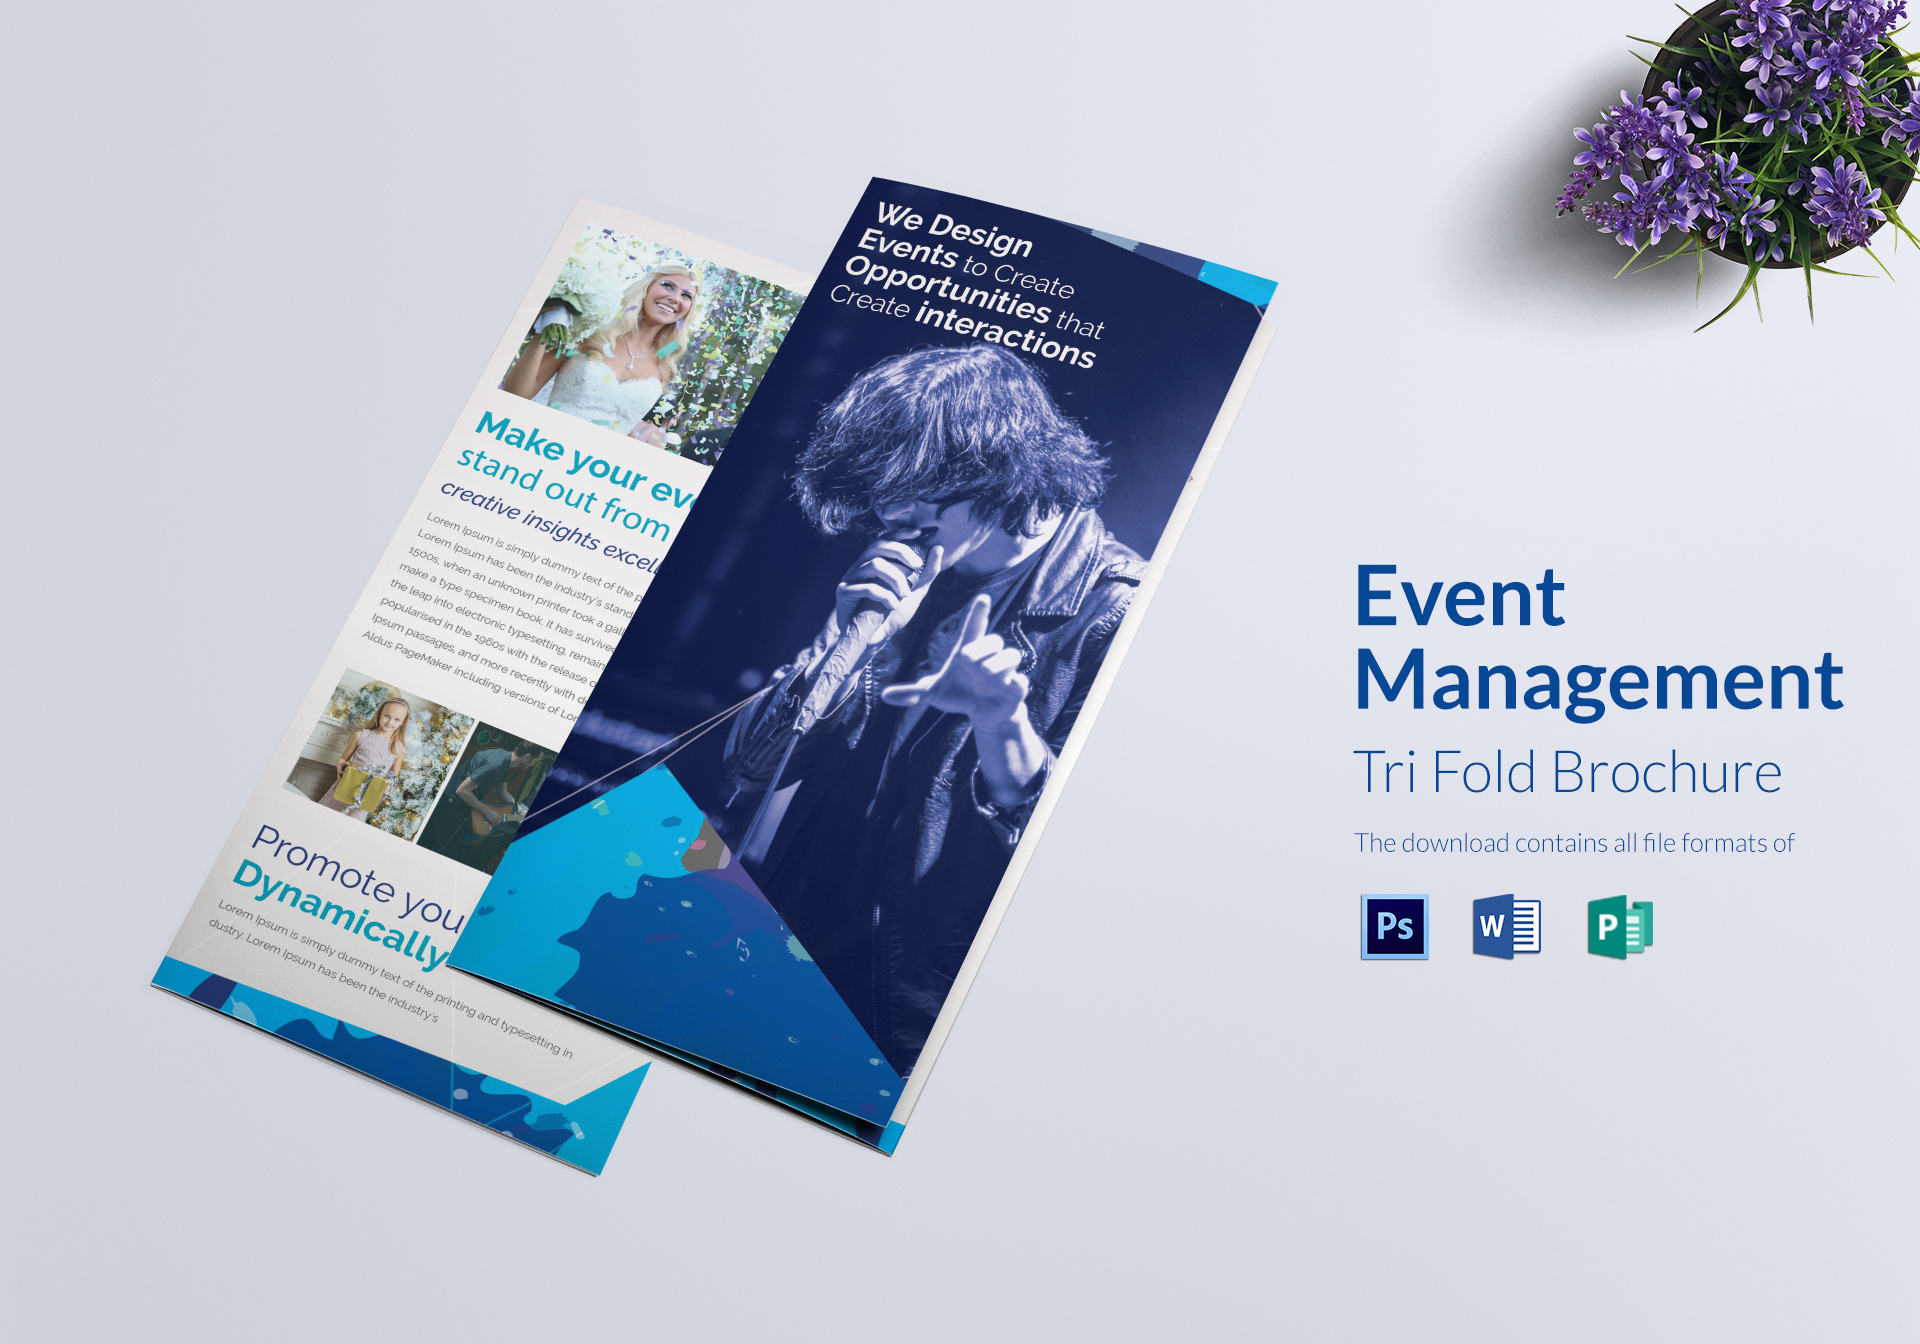 Event Management Tri Fold Brochure Design Template In Word PSD